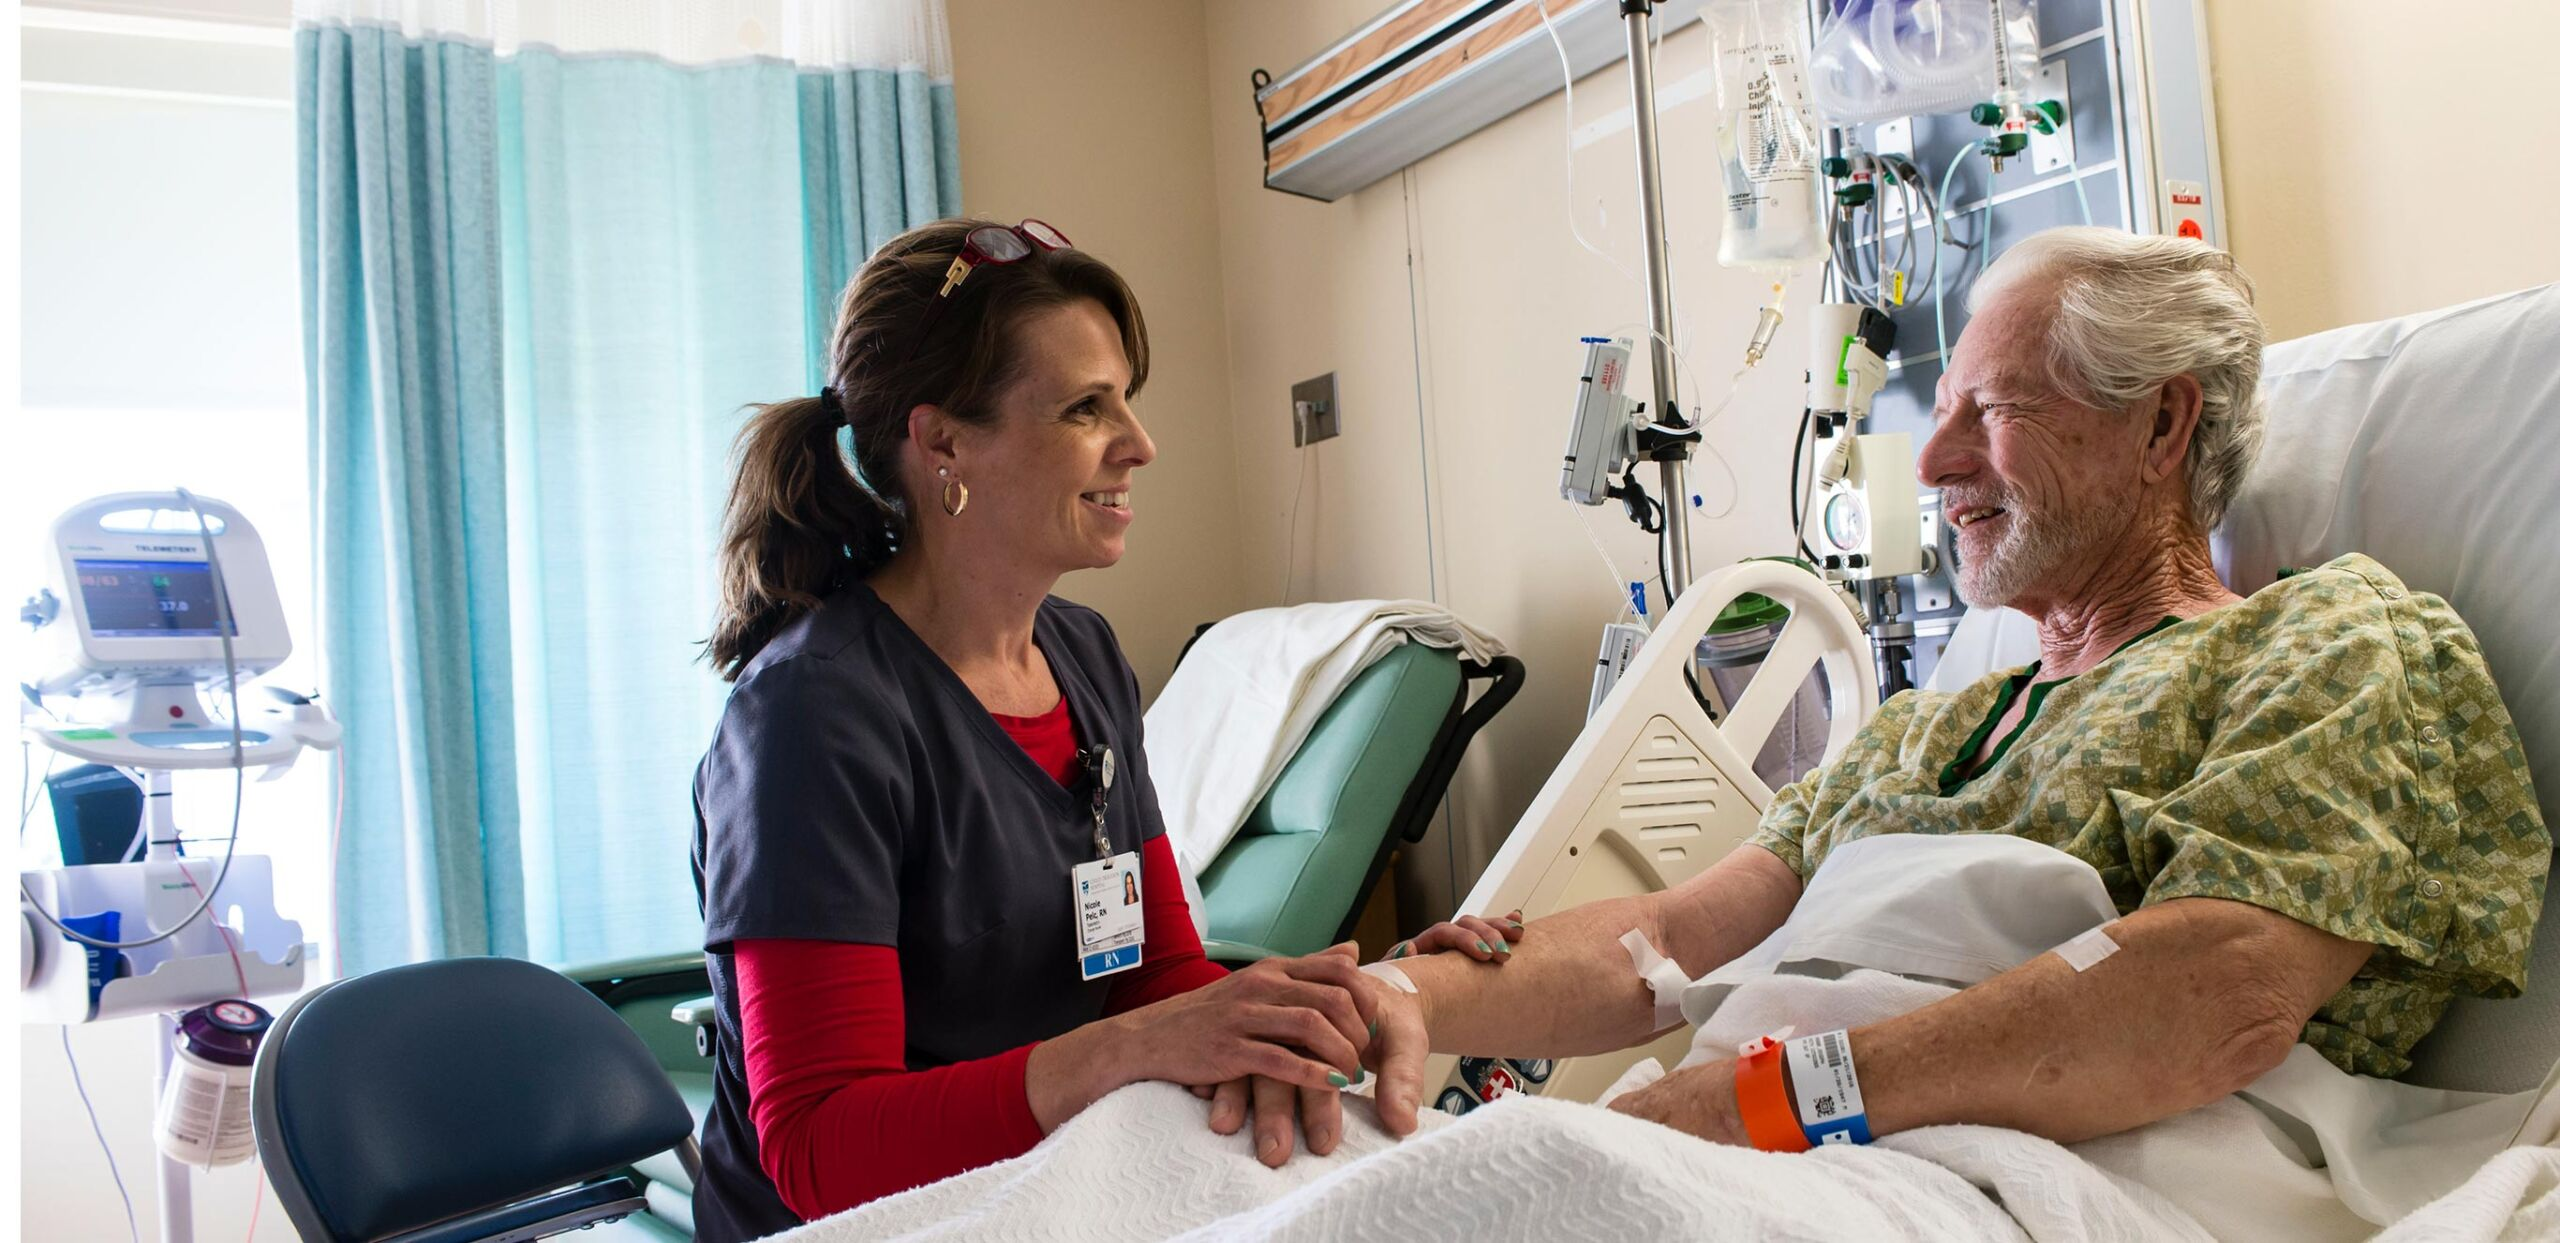 Friendly female nurse holds hand of smiling older male patient while they talk in his room at Cooley Dickinson Hospital, 30 Locust Street, Northampton, MA 01060.